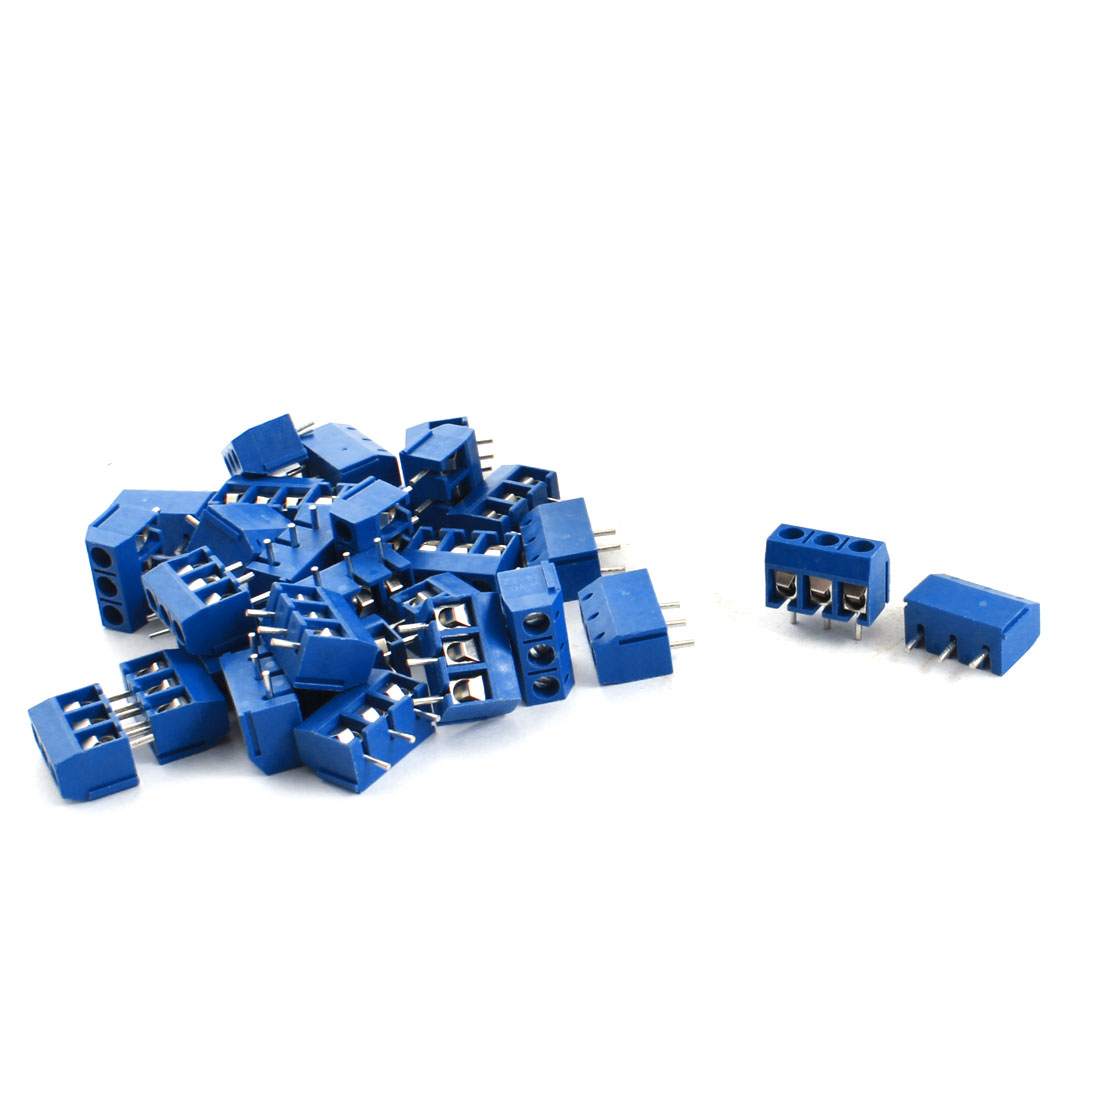 30Pcs 3 Pin 5.08mm Pitch PCB Board Mount Screw Terminal Block 12A 300V Blue